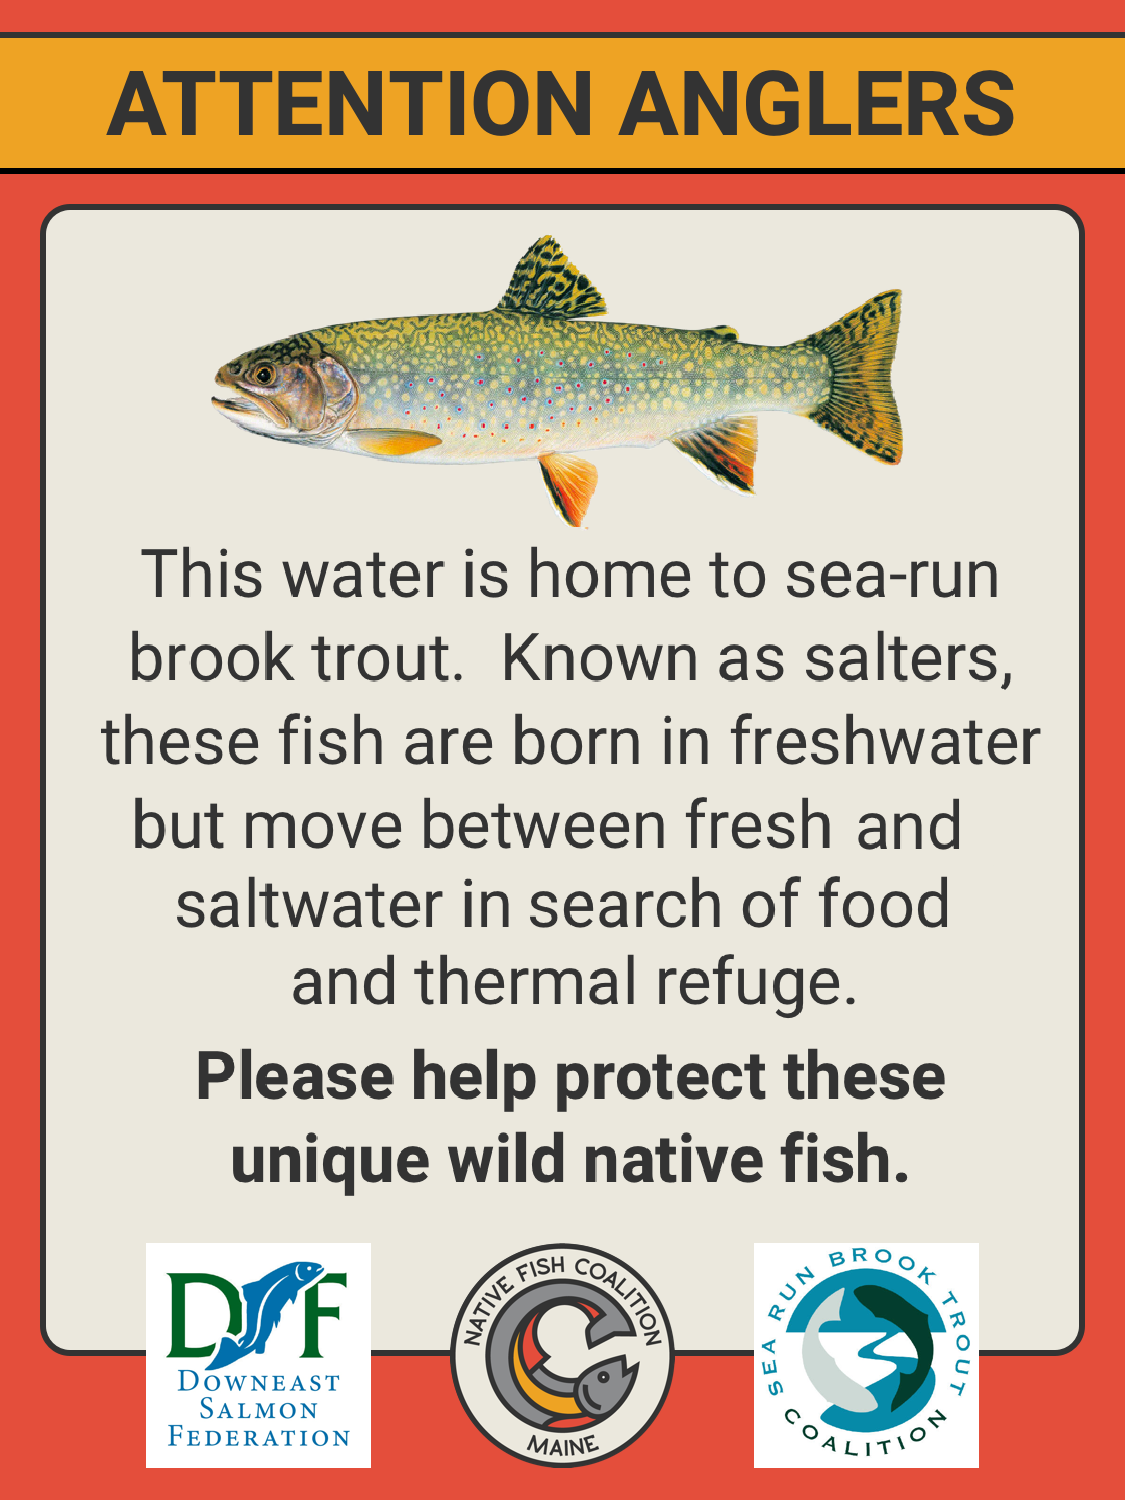 ME Sea-Run Brook Trout Sign (DSF).png